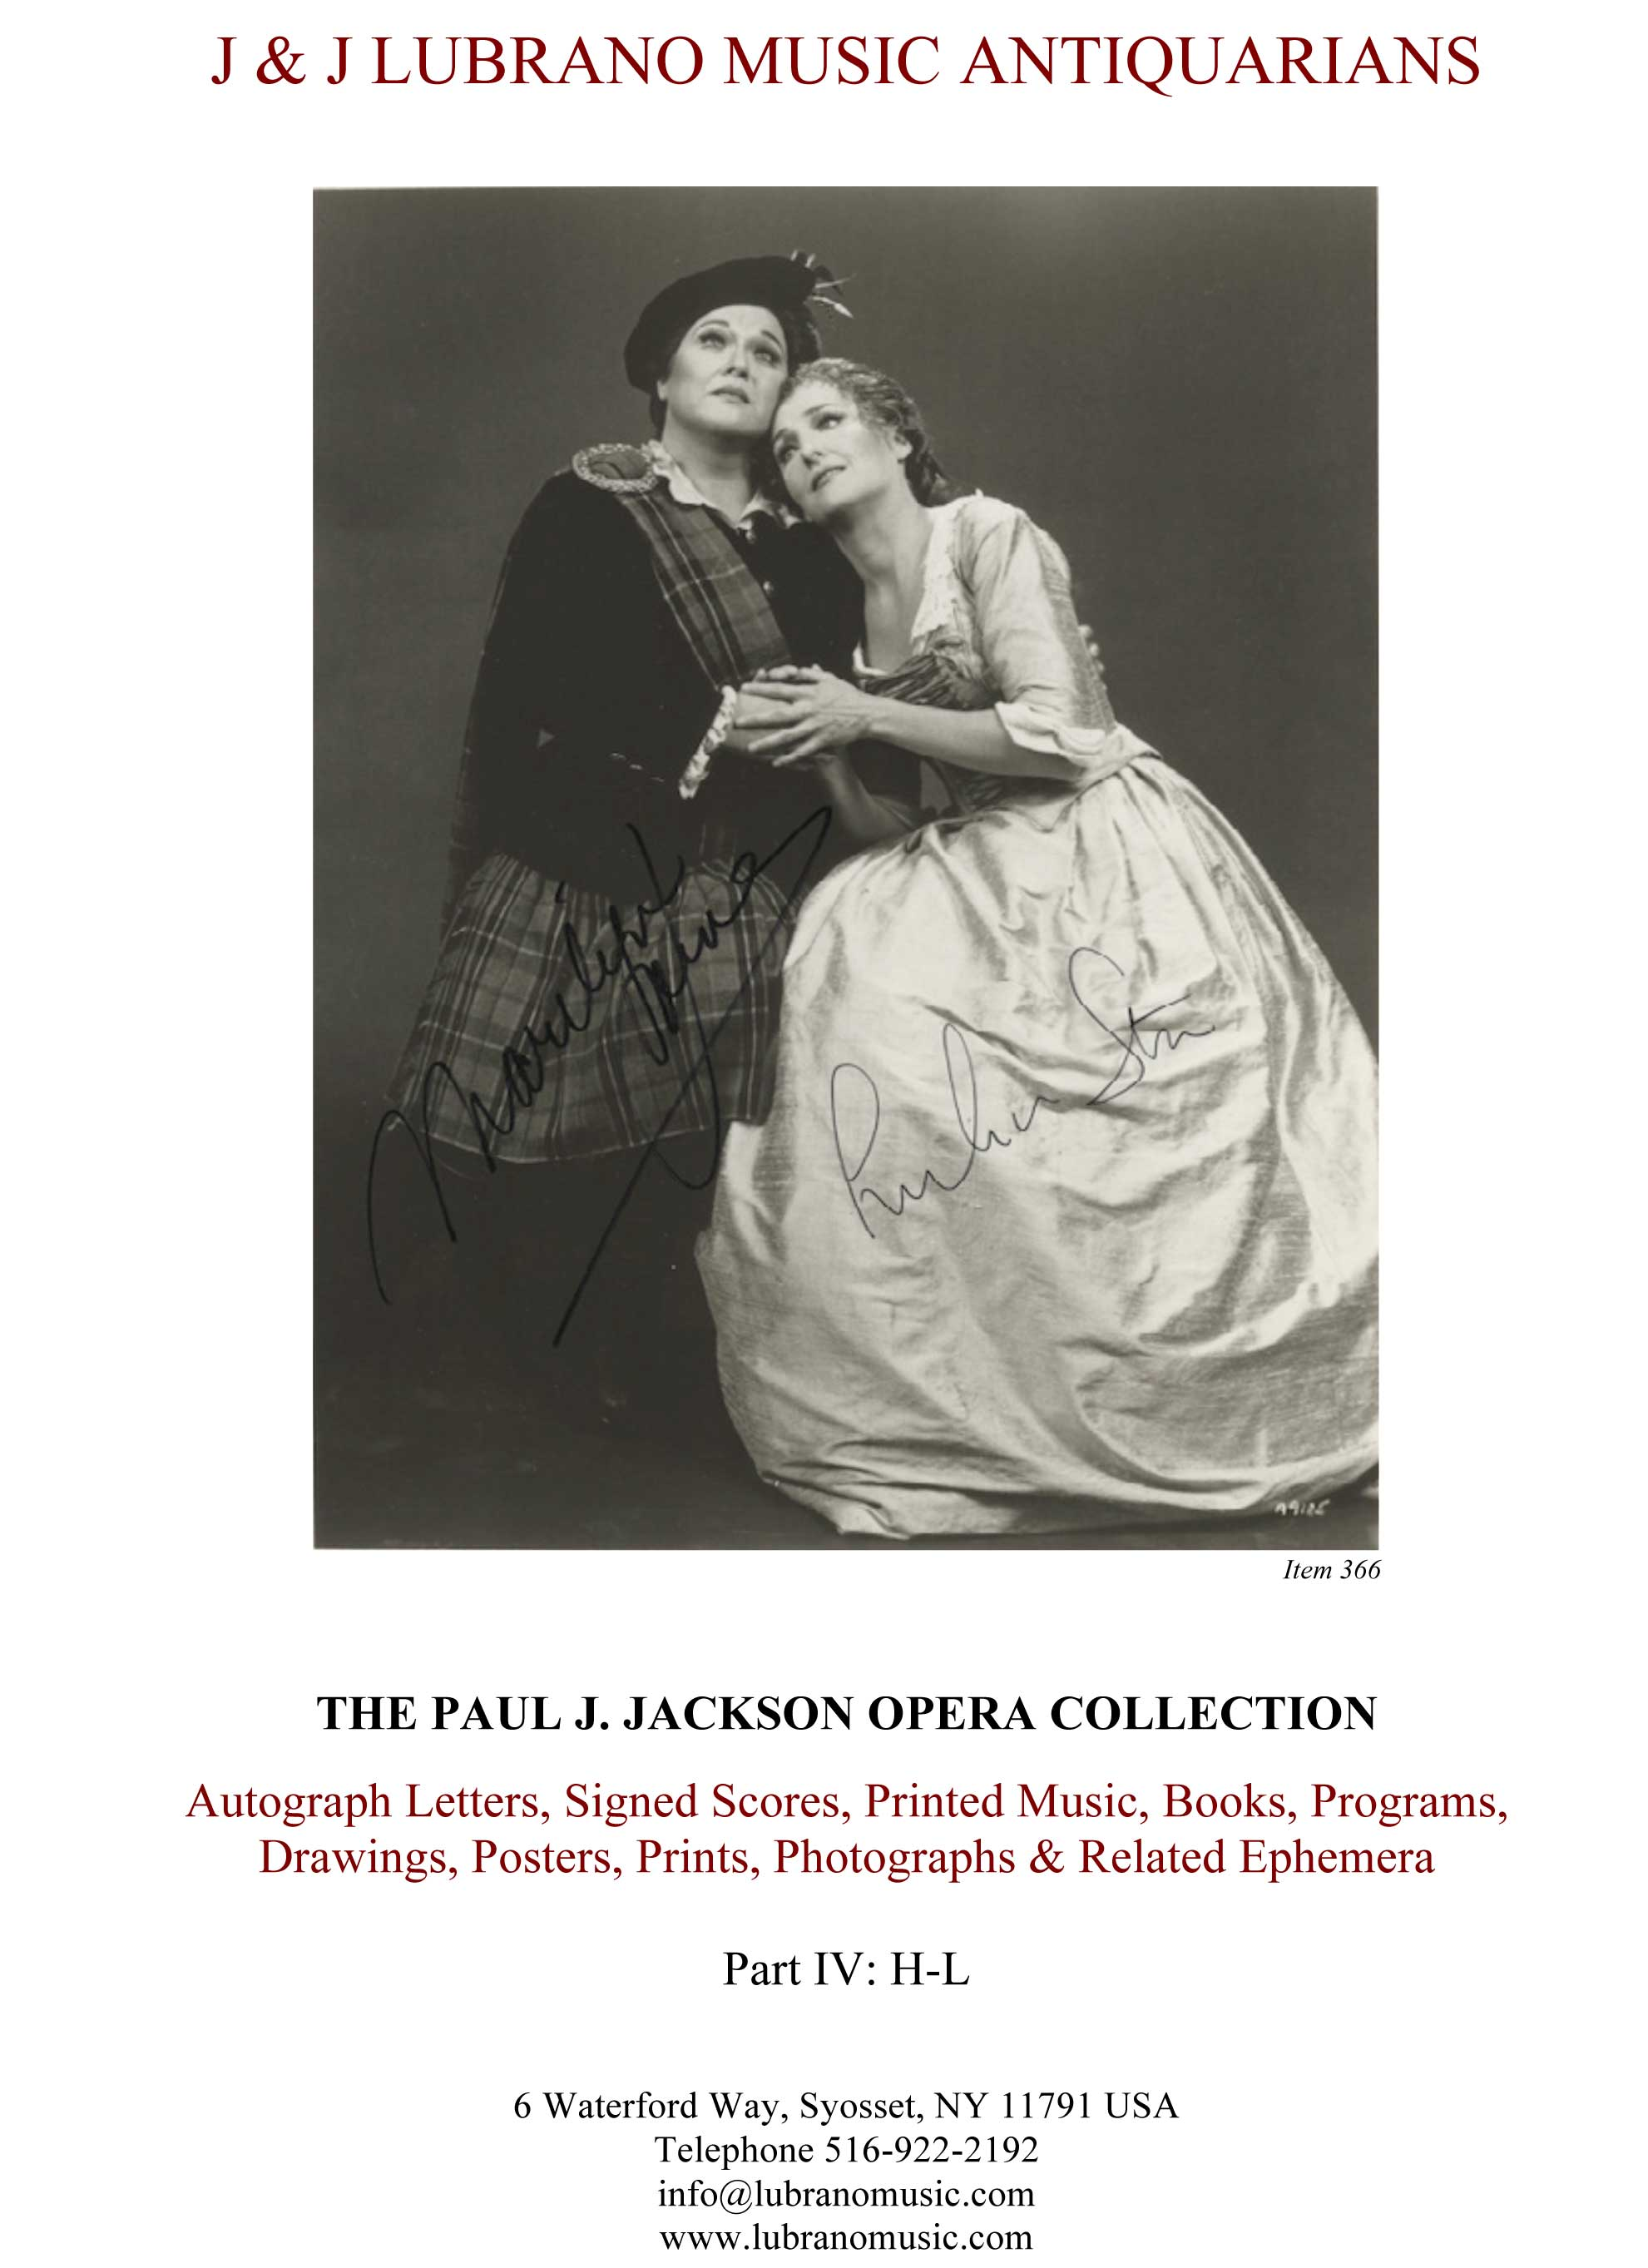 THE PAUL J. JACKSON OPERA COLLECTION - Part IV: H-L